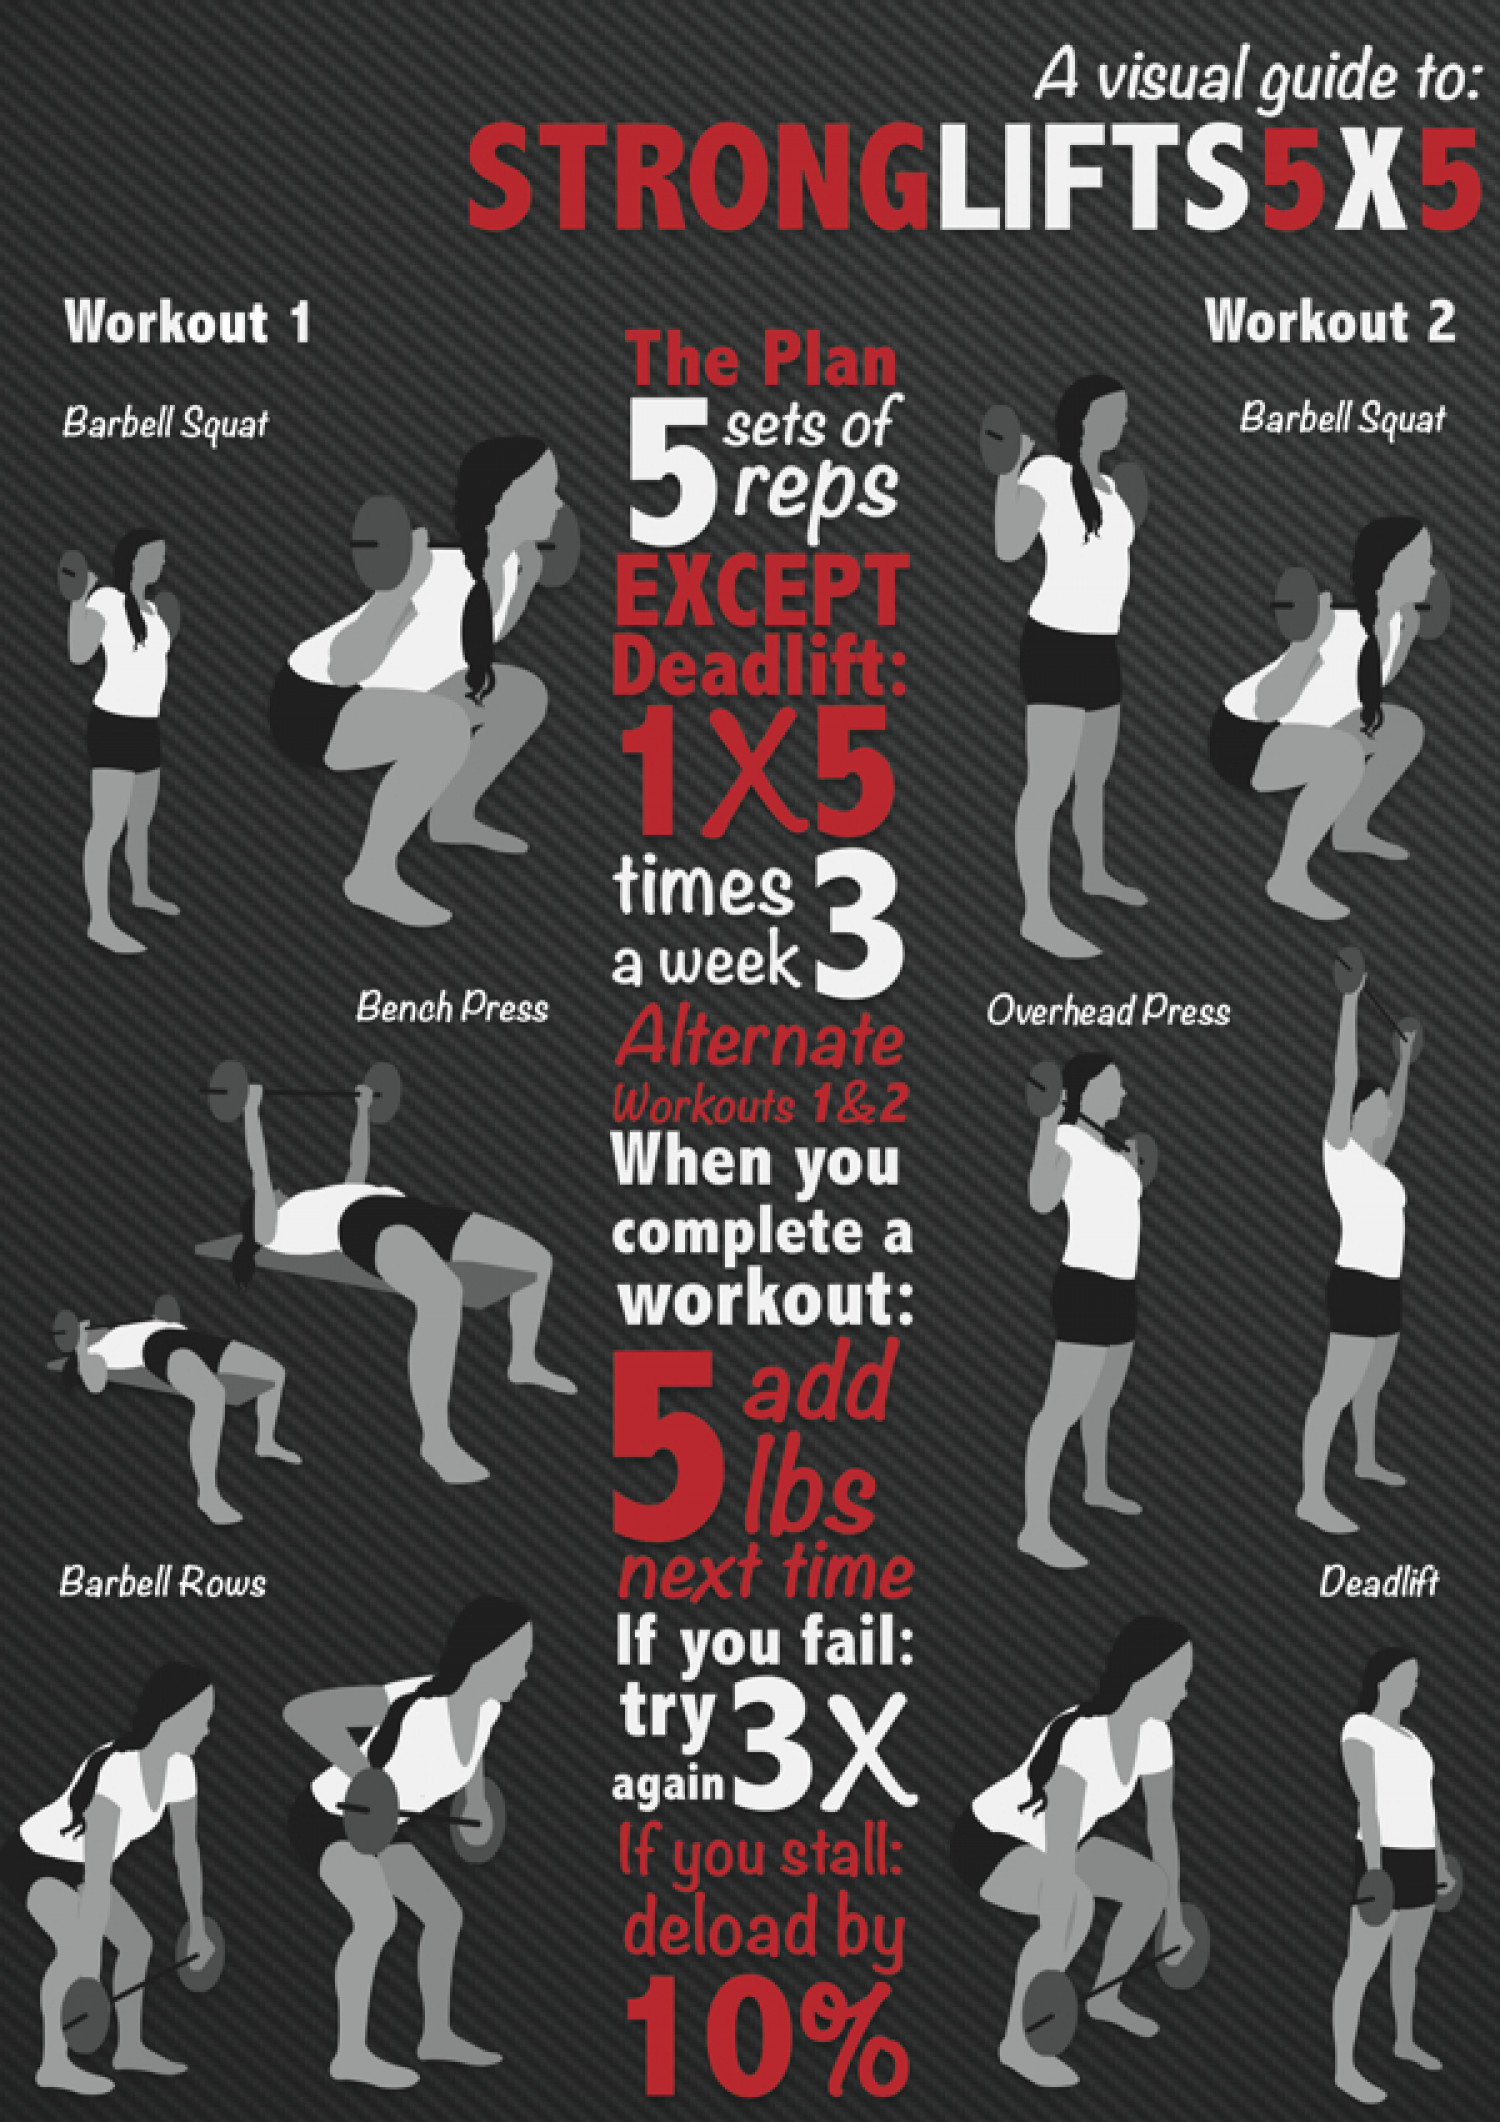 A Visual Guide to StrongLifts 5x5   Visual.ly